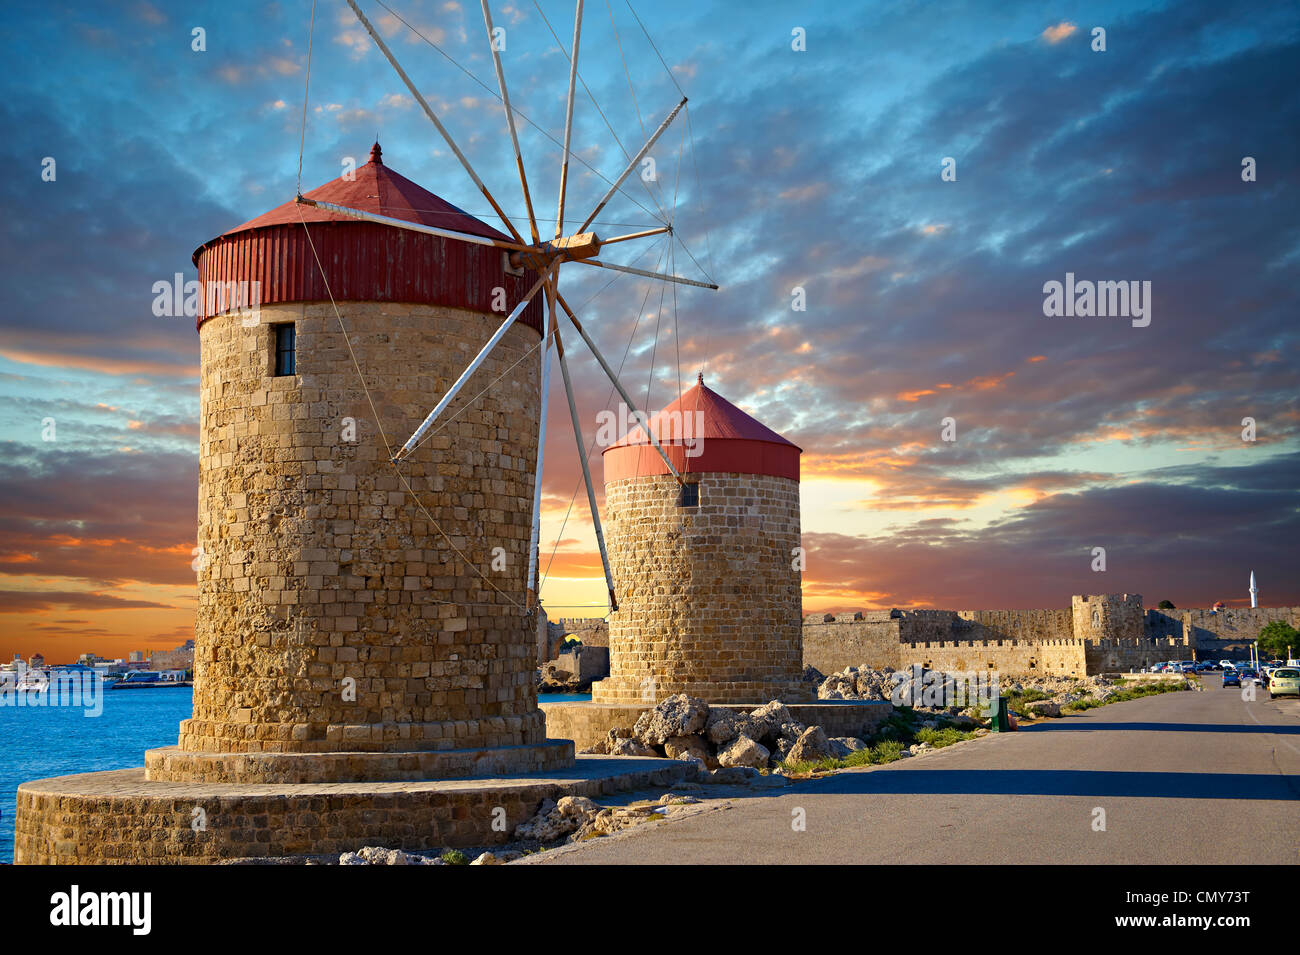 Windmills and walls of Rhodes, Greece. UNESCO World Heritage Site - Stock Image